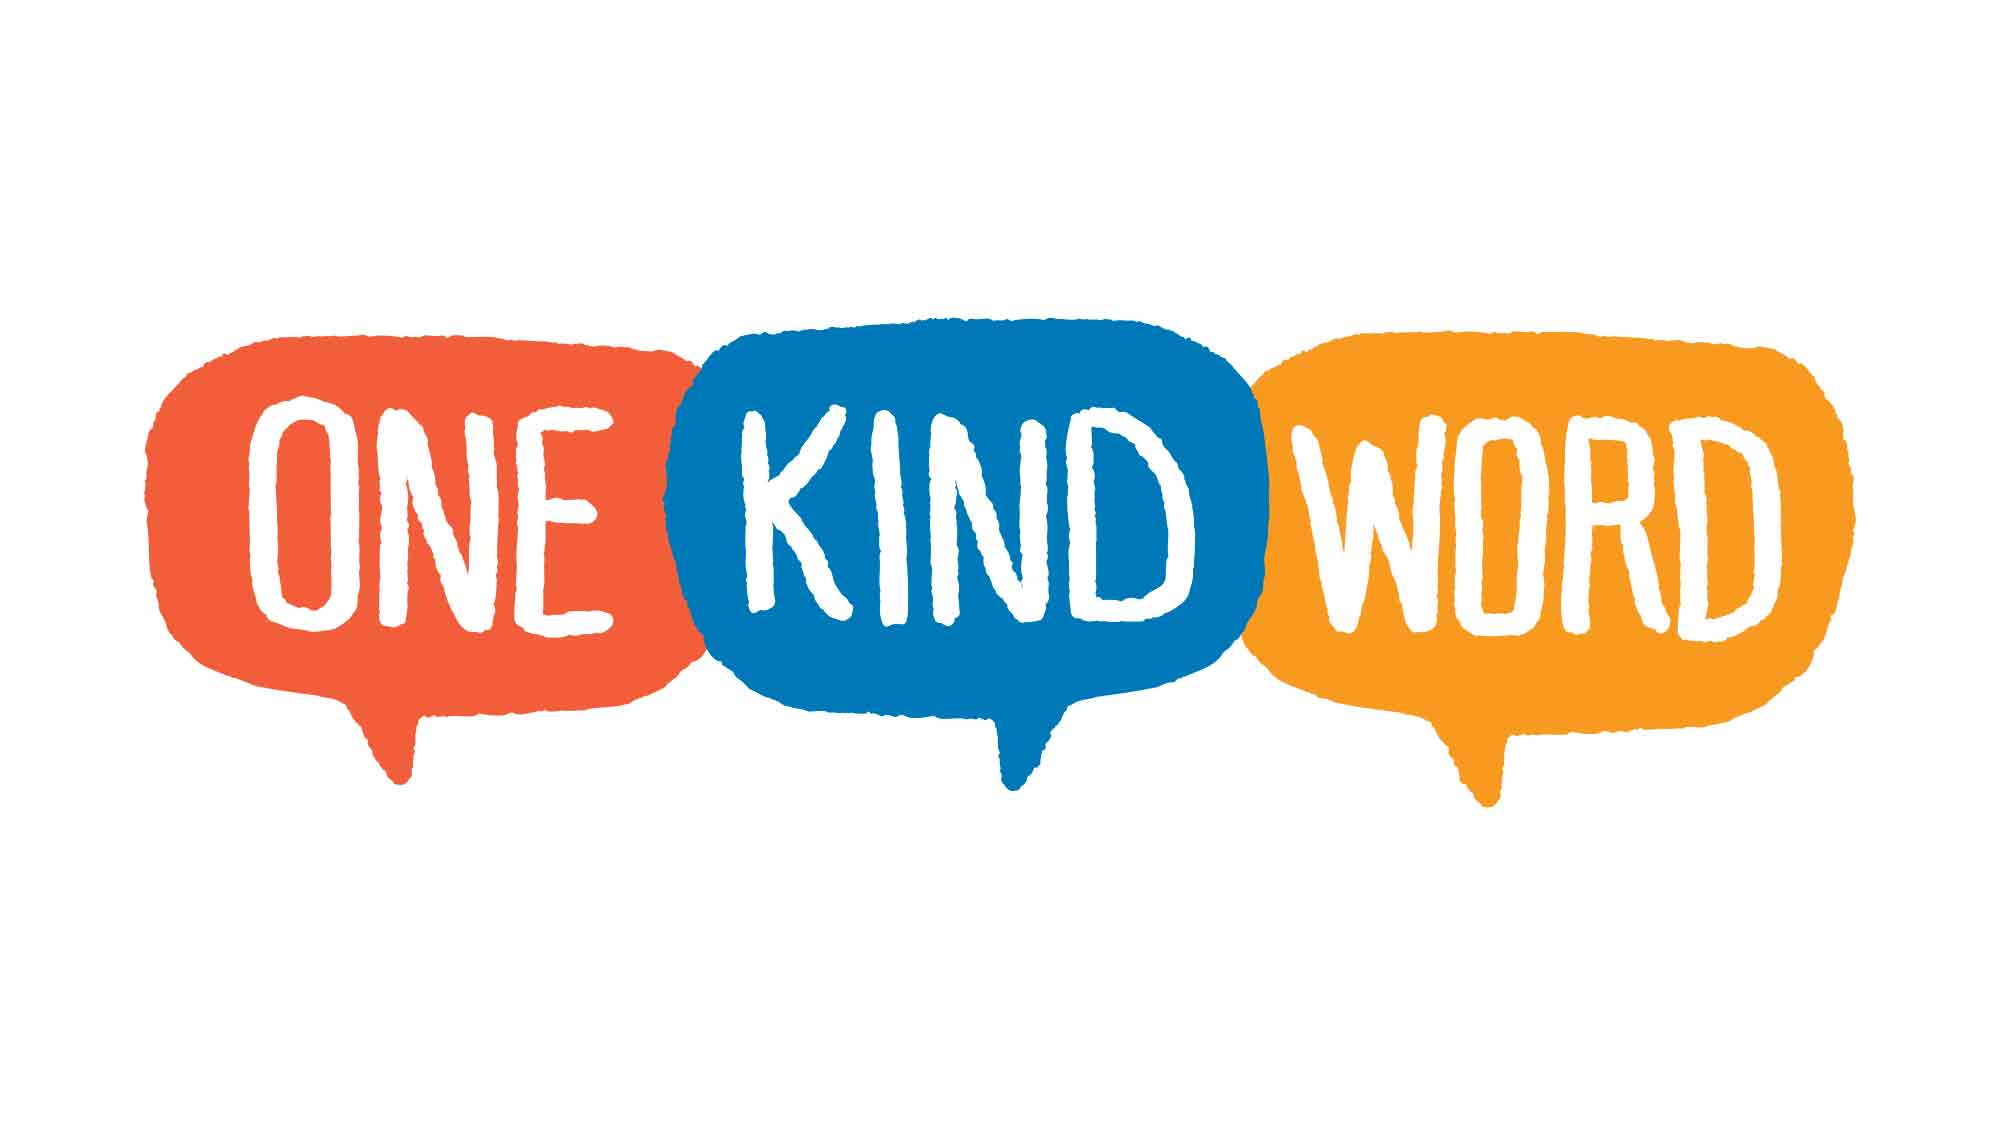 One Kind Word logo